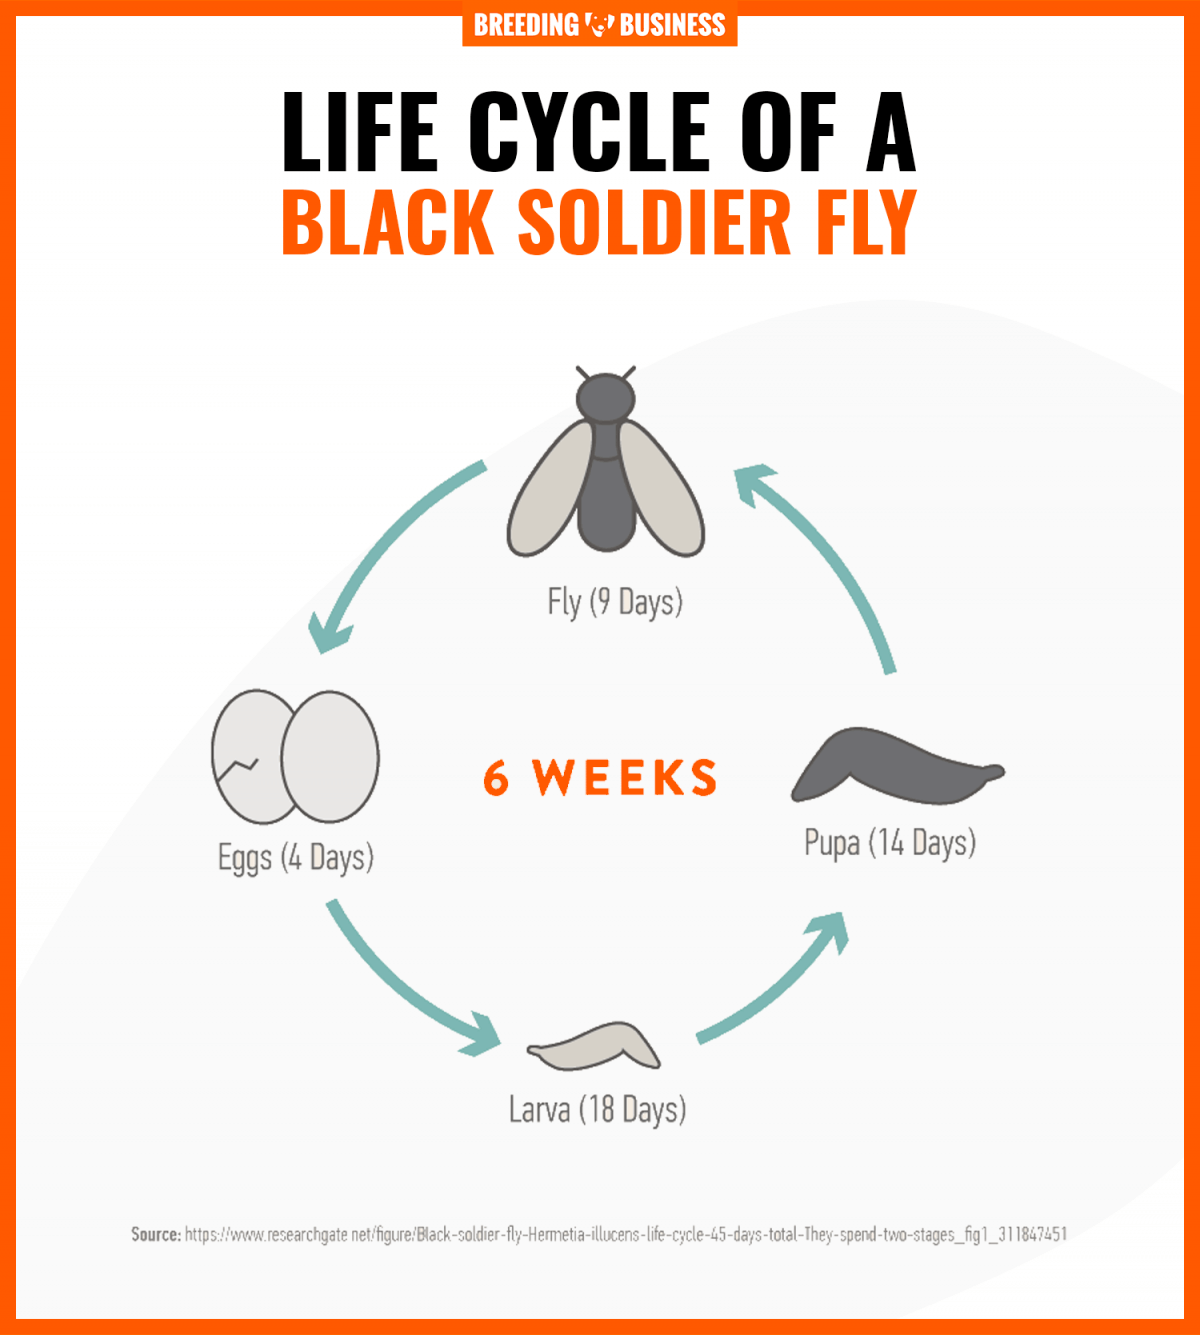 lifecycle of a black soldier fly